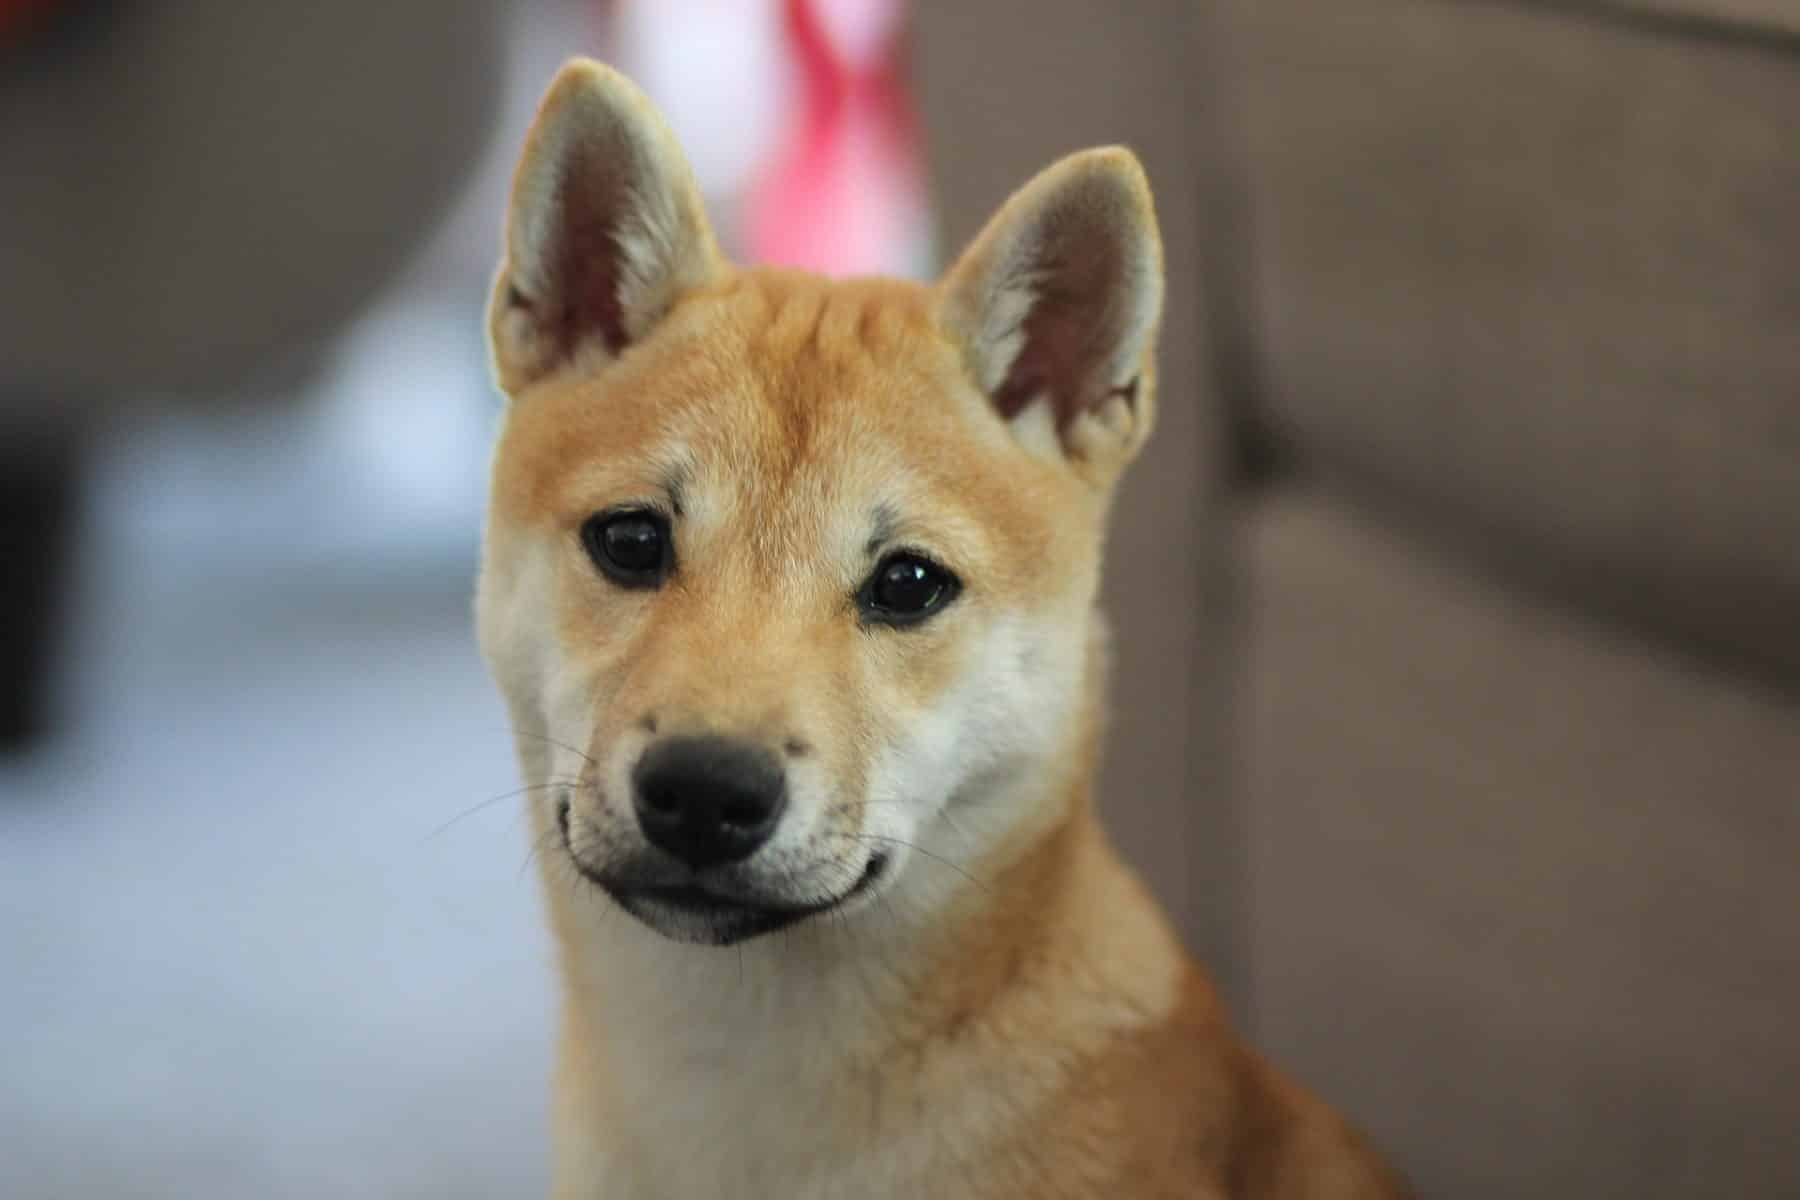 Shiba Inu Puppies The Ultimate Guide For New Dog Owners The Dog People By Rover Com